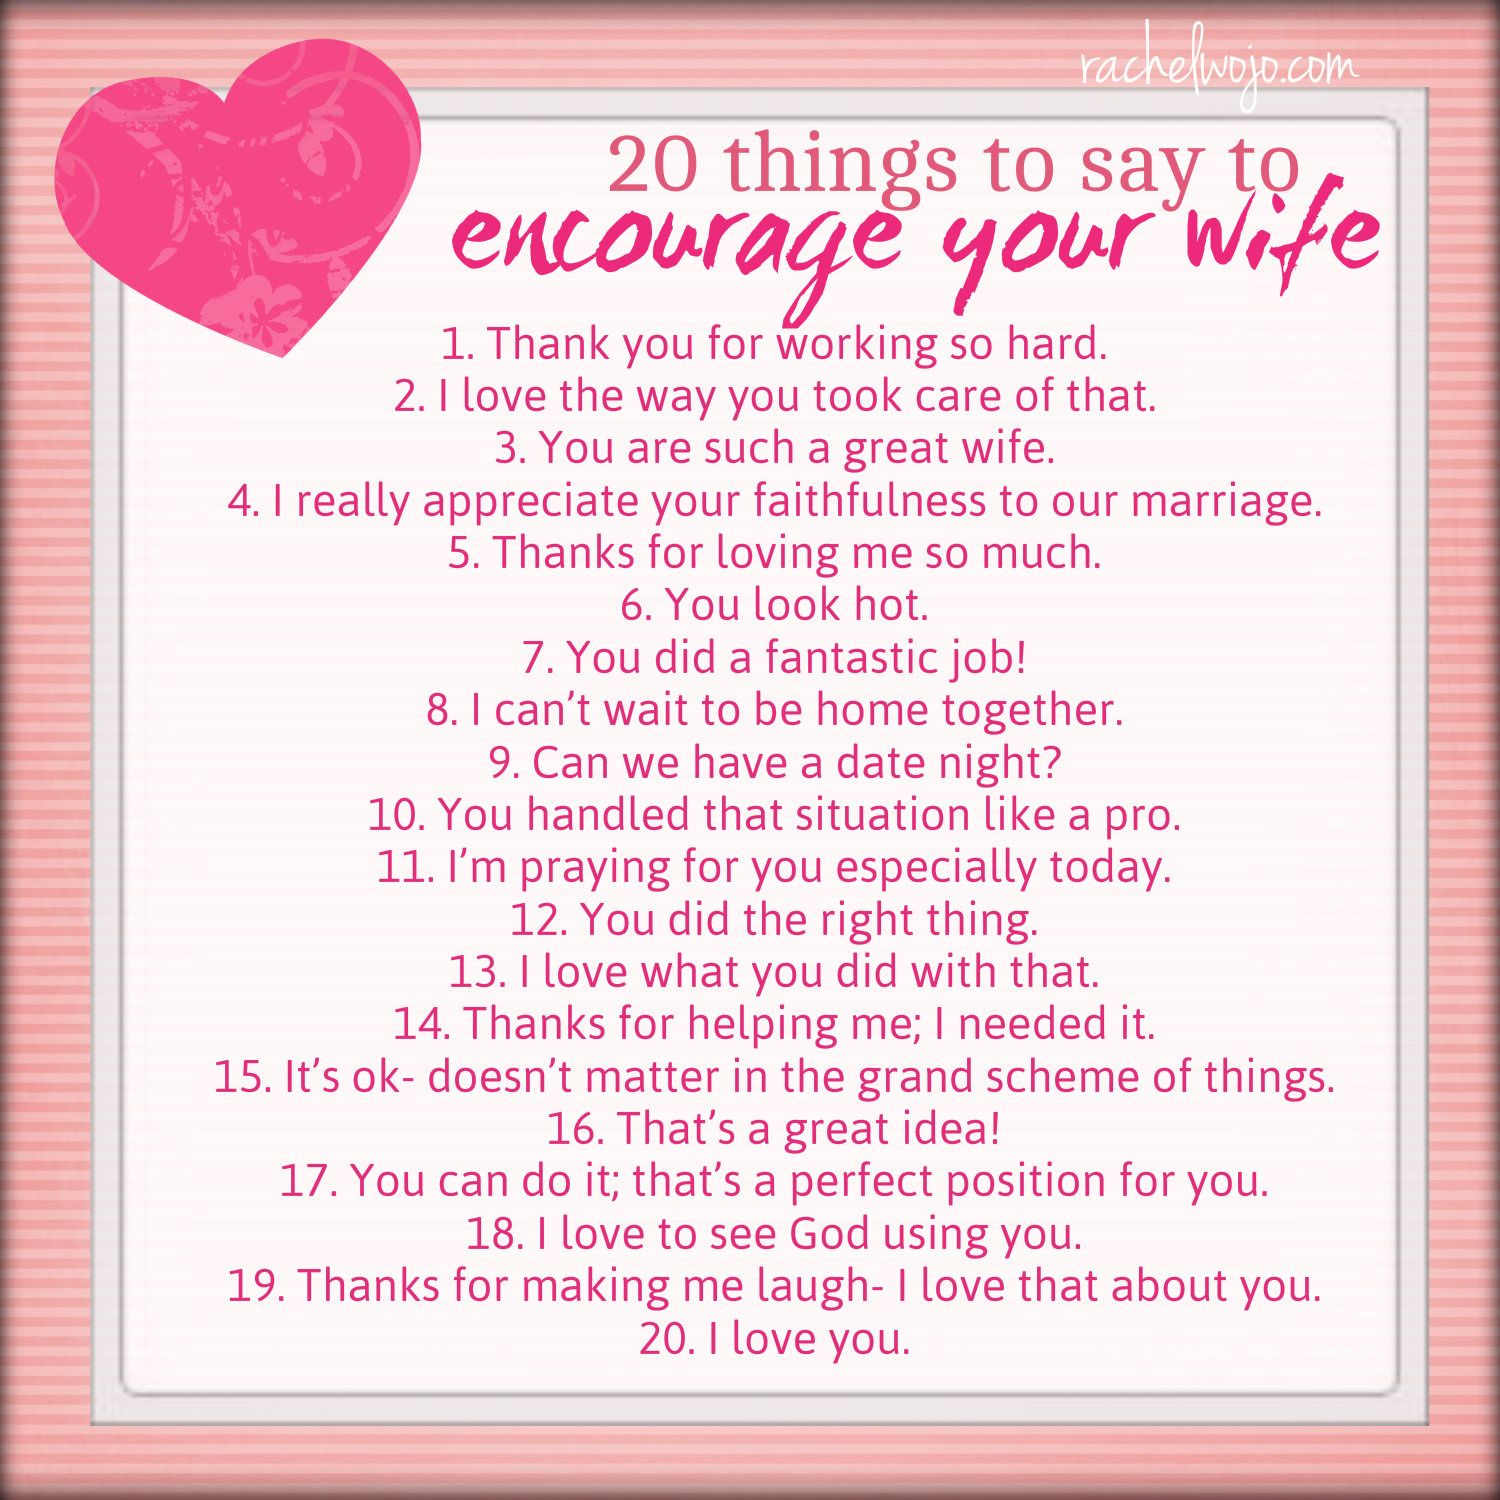 Words Of Encouragement To Your Wife Facebook thumbnail